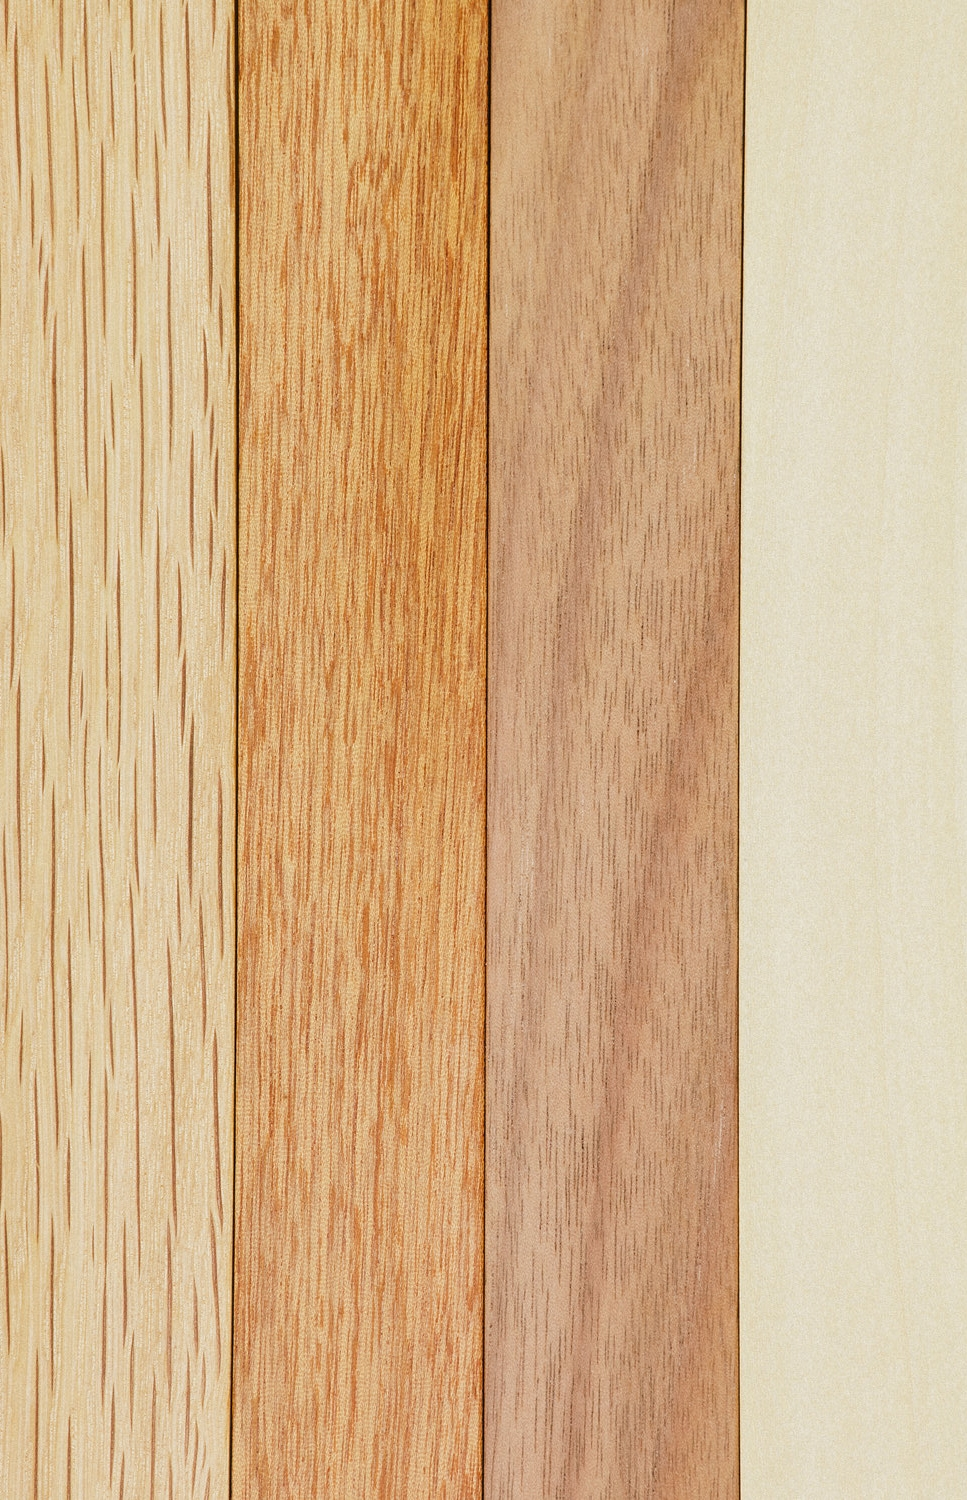 FOUR-WOODS-CLOSE-UP.jpg